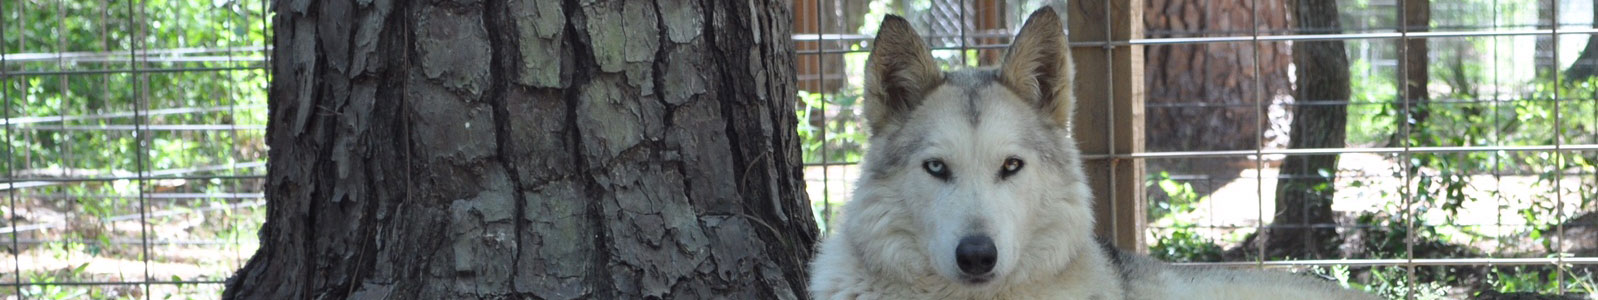 Texas Wolfdog Project Contact Header Image